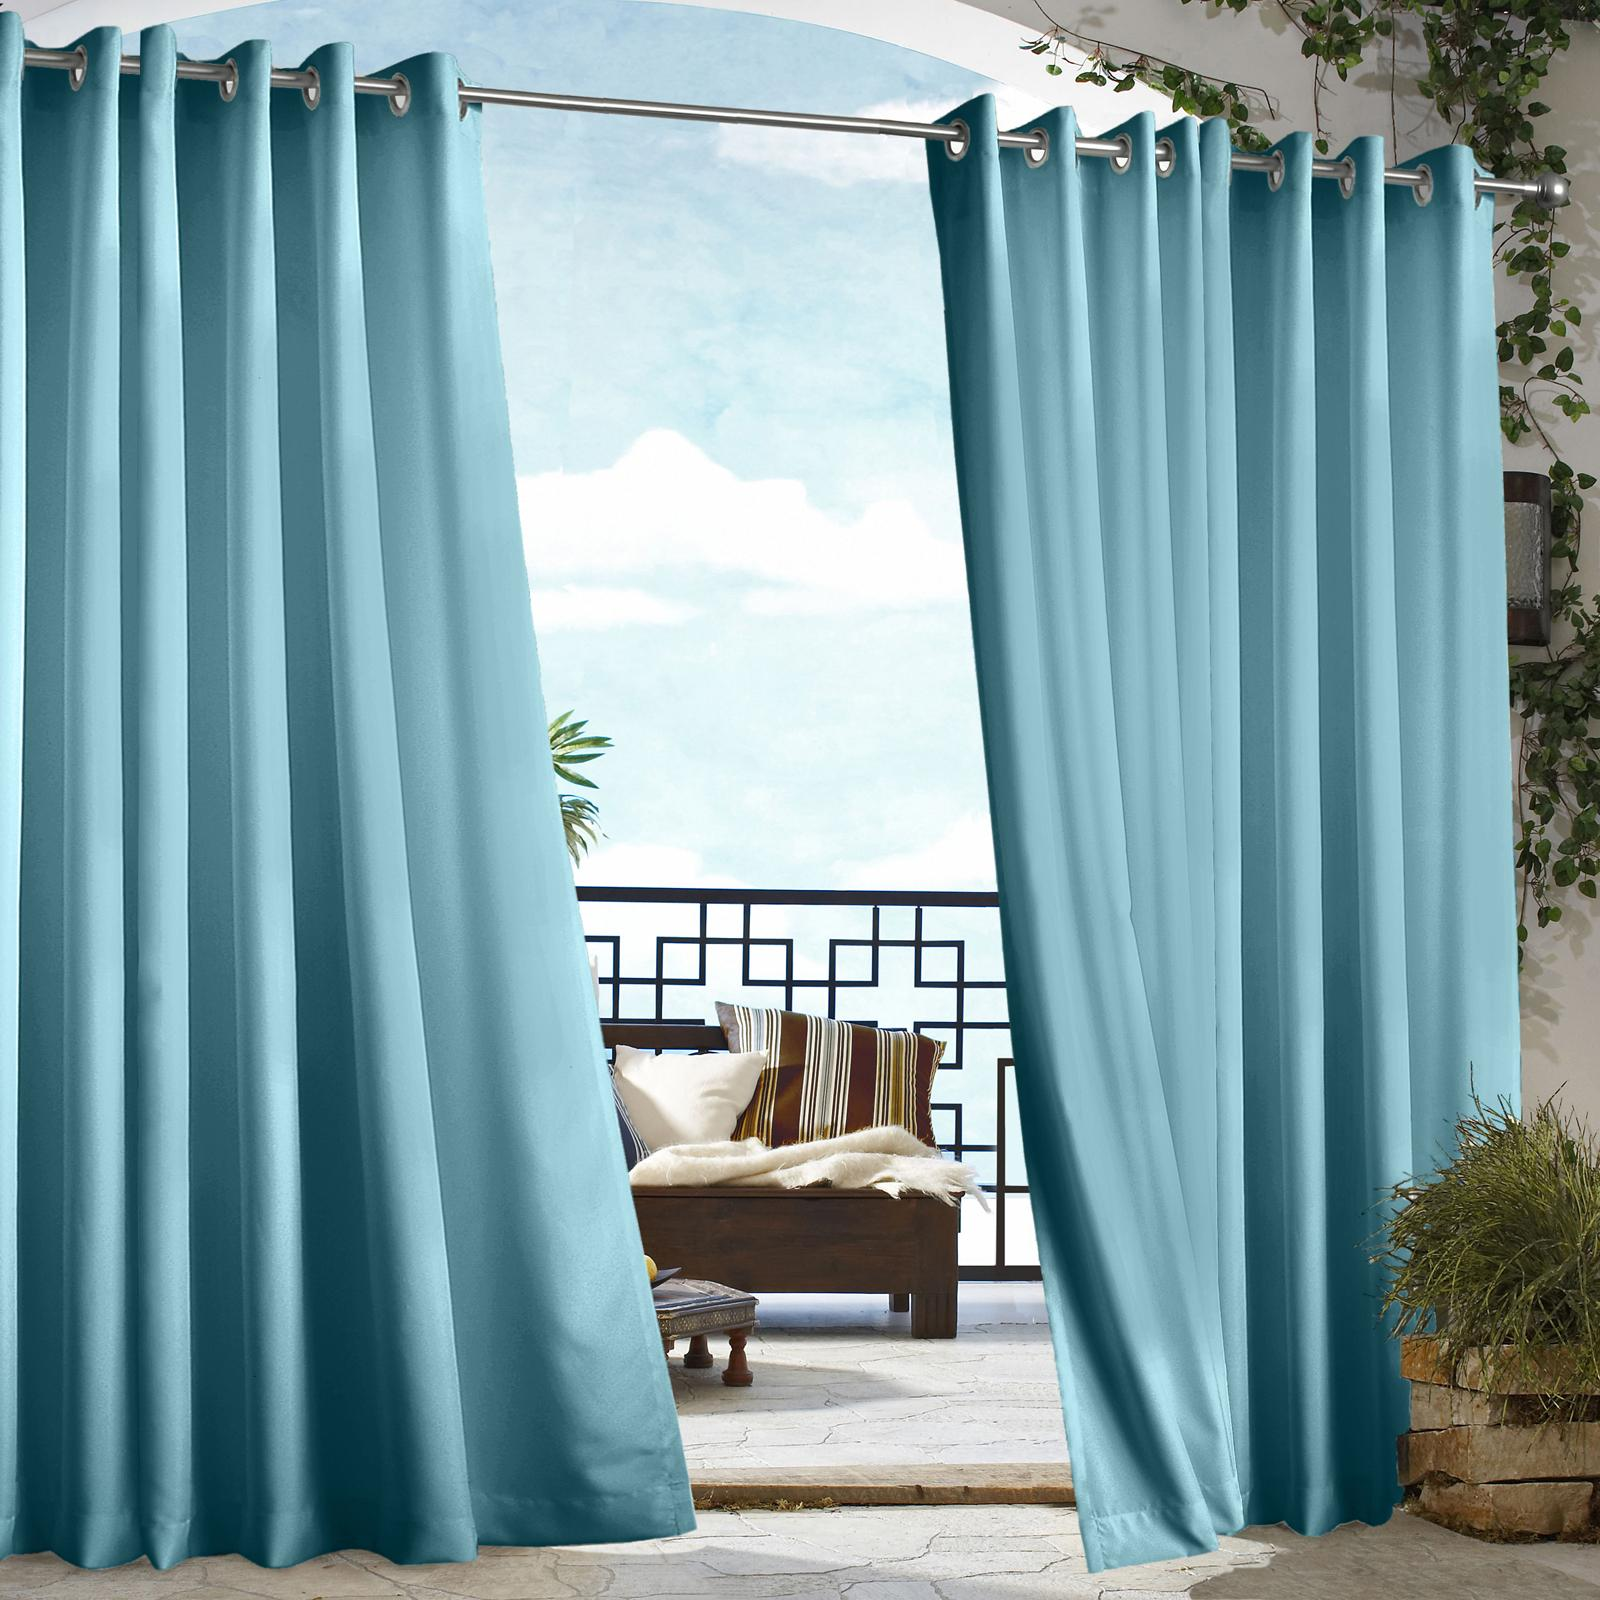 Commonwealth Outdoor Decor Gazebo Grommet Outdoor Curtain...